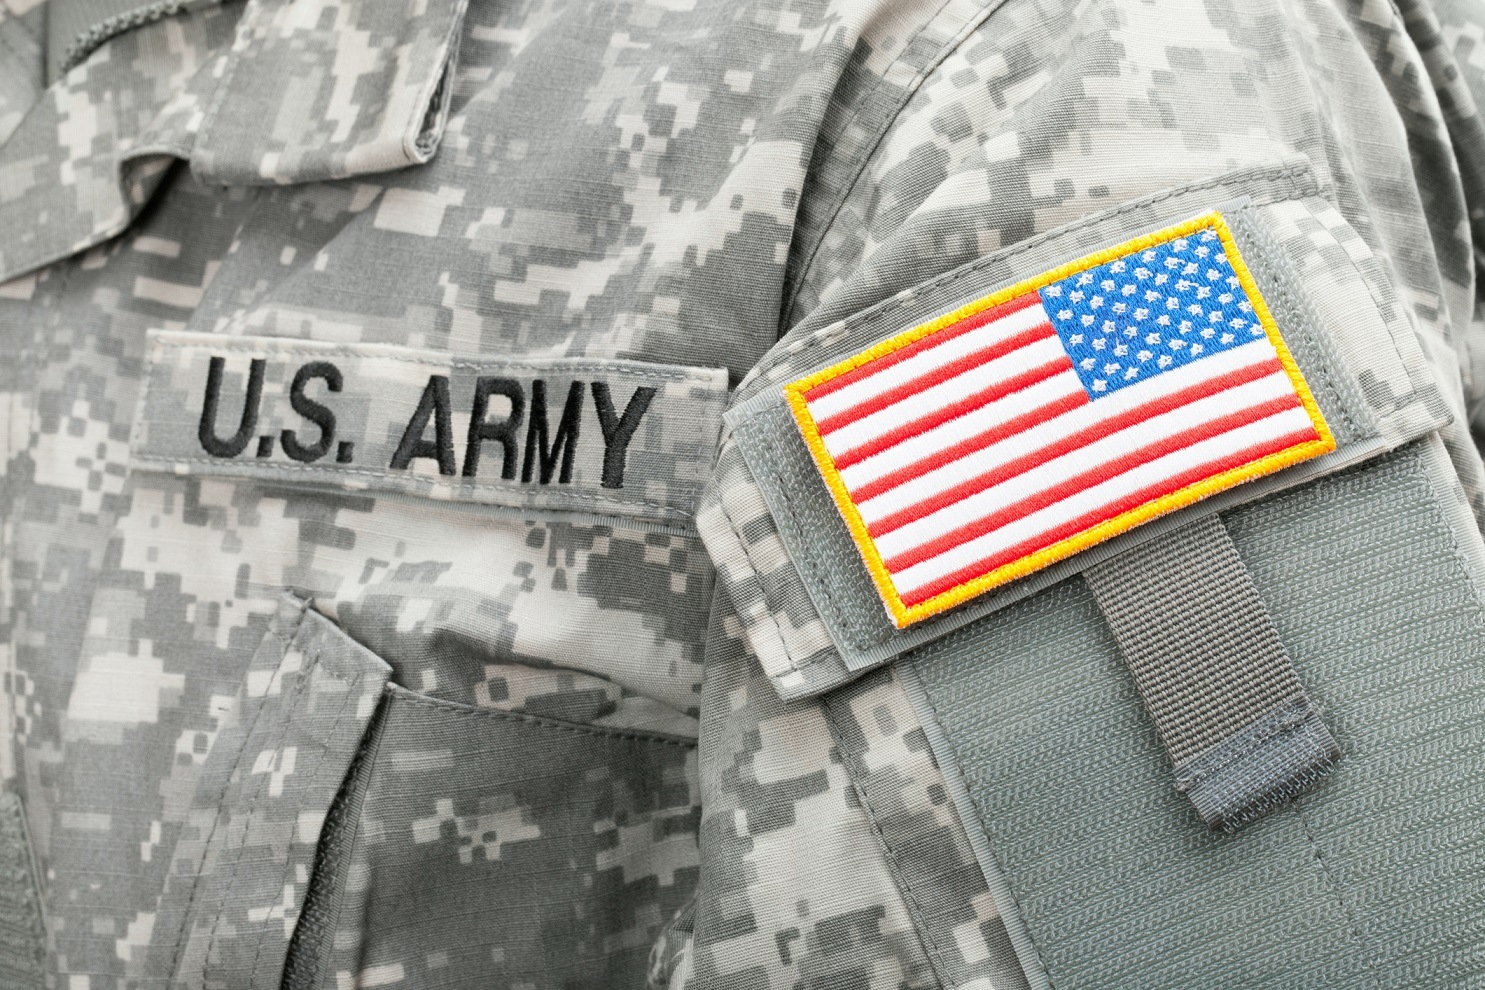 Close up studio shot of USA flag and U.S. ARMY patch on solders uniform